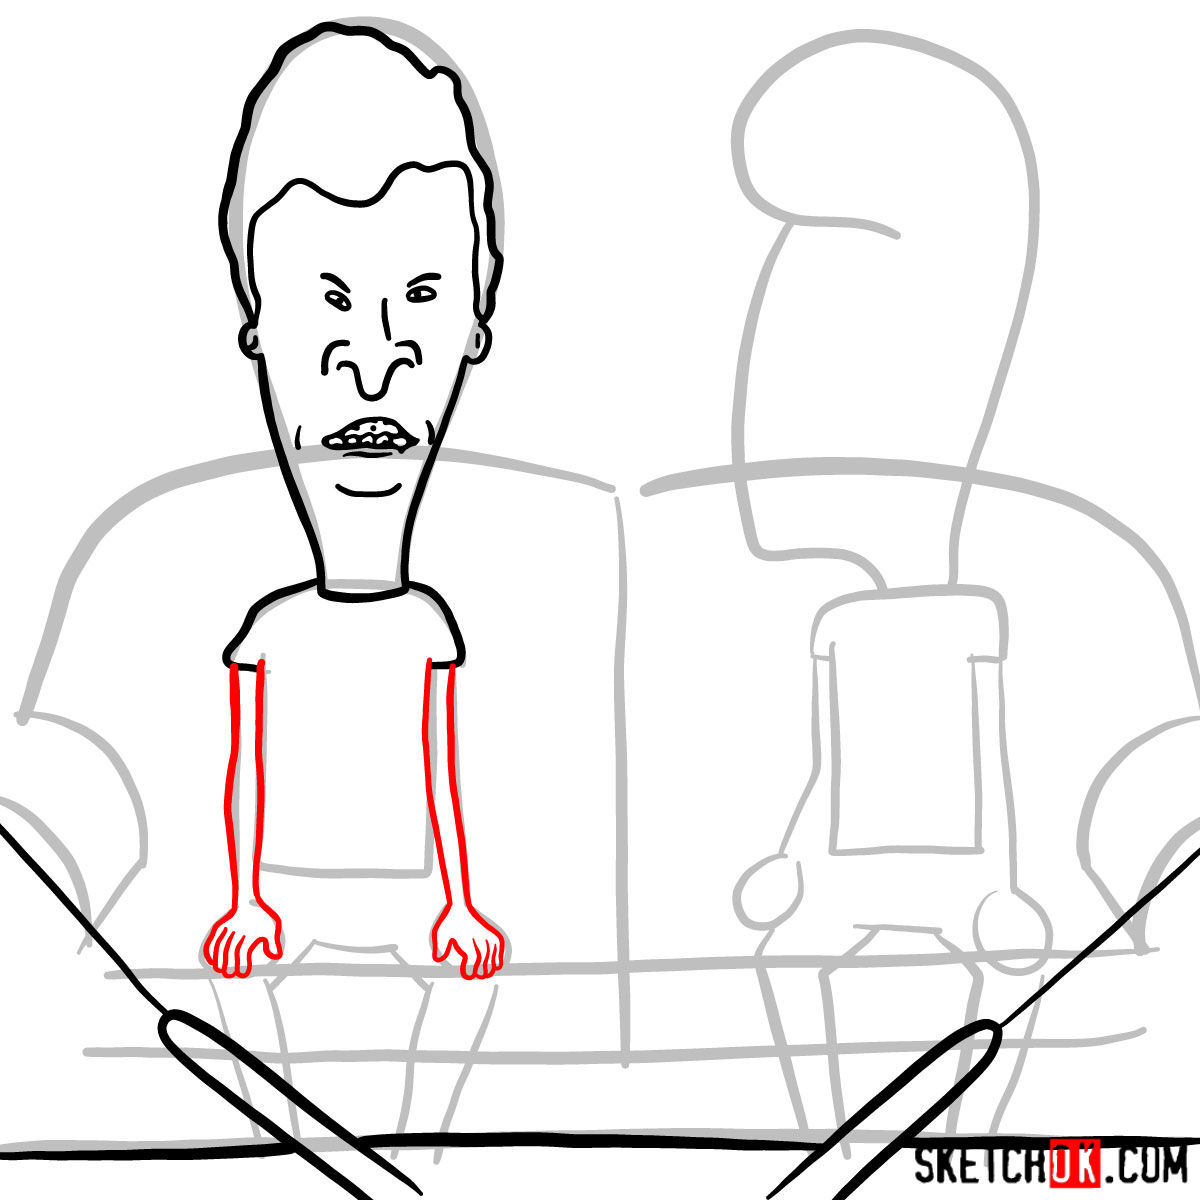 How to draw Beavis and Butt-Head - step 07